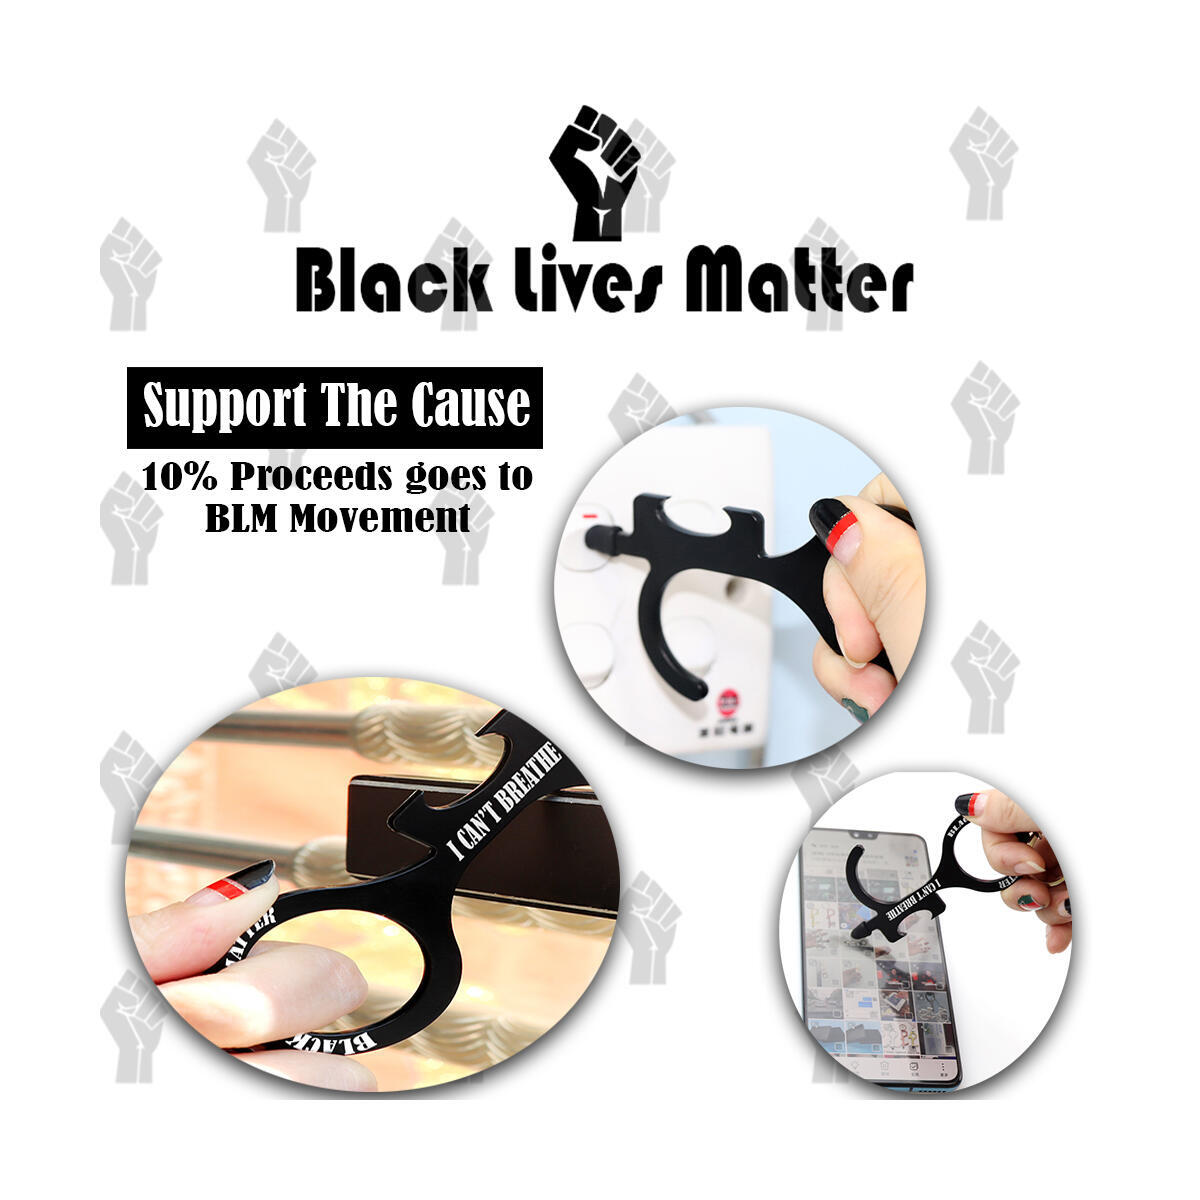 BLACK LIVES MATTER Anti Touch Contactless Door Opener, Handheld Tool Keychain for Door Handles, Elevator,Touch Screens, ATM, Bottle Opener. Key Tool to Stay Clean, Safe & Sanitized